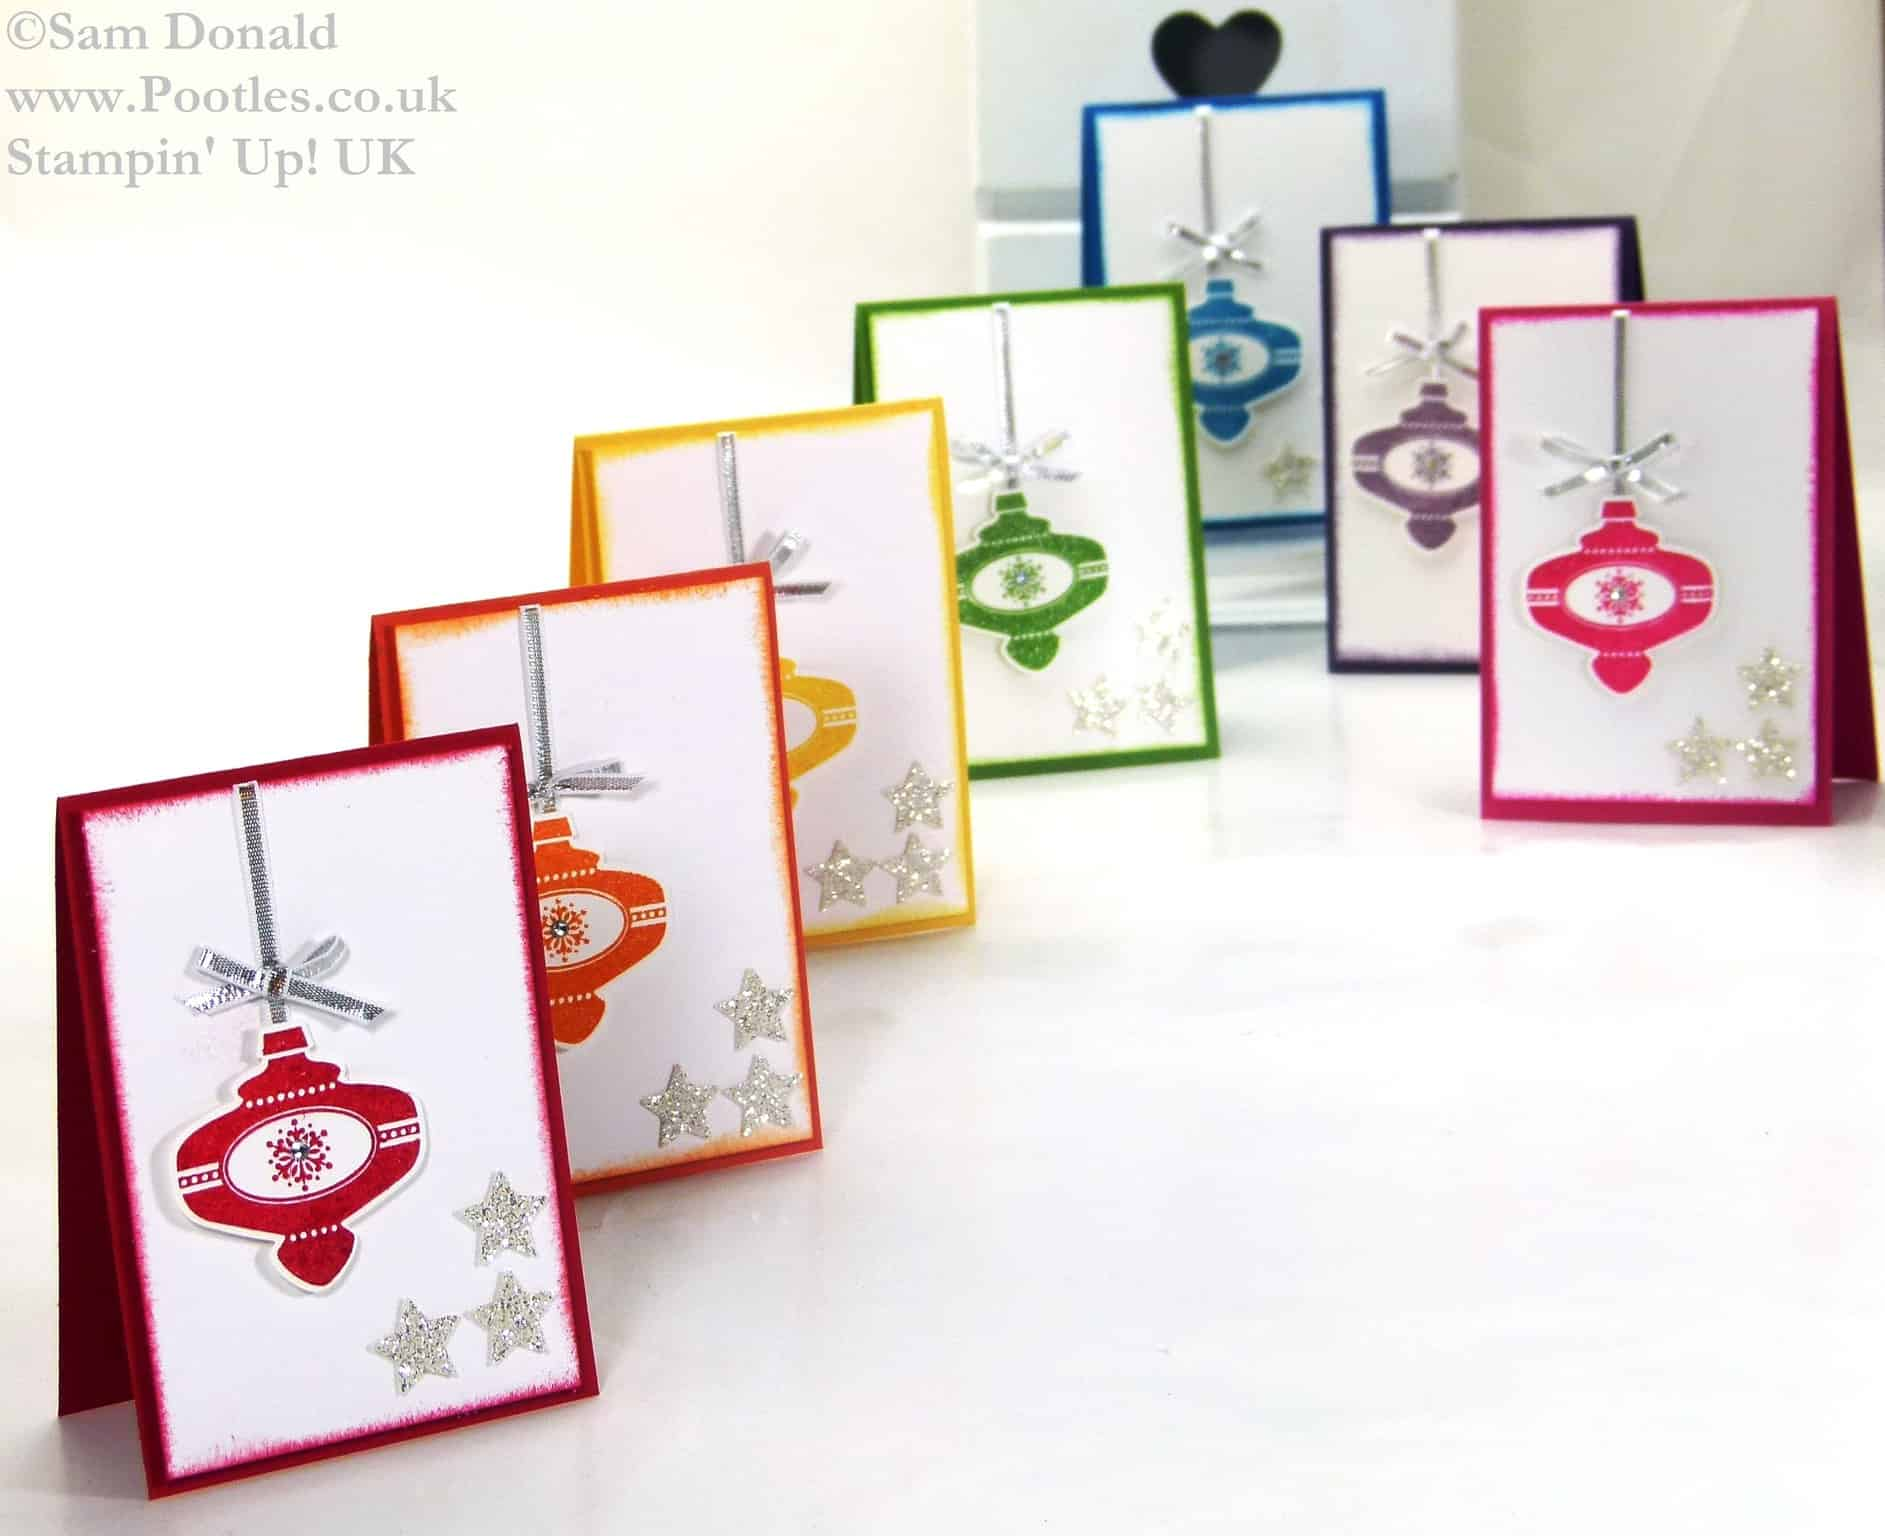 Pootles Stampin Up UK Mini Retro Multicoloured Christmas Collectibles